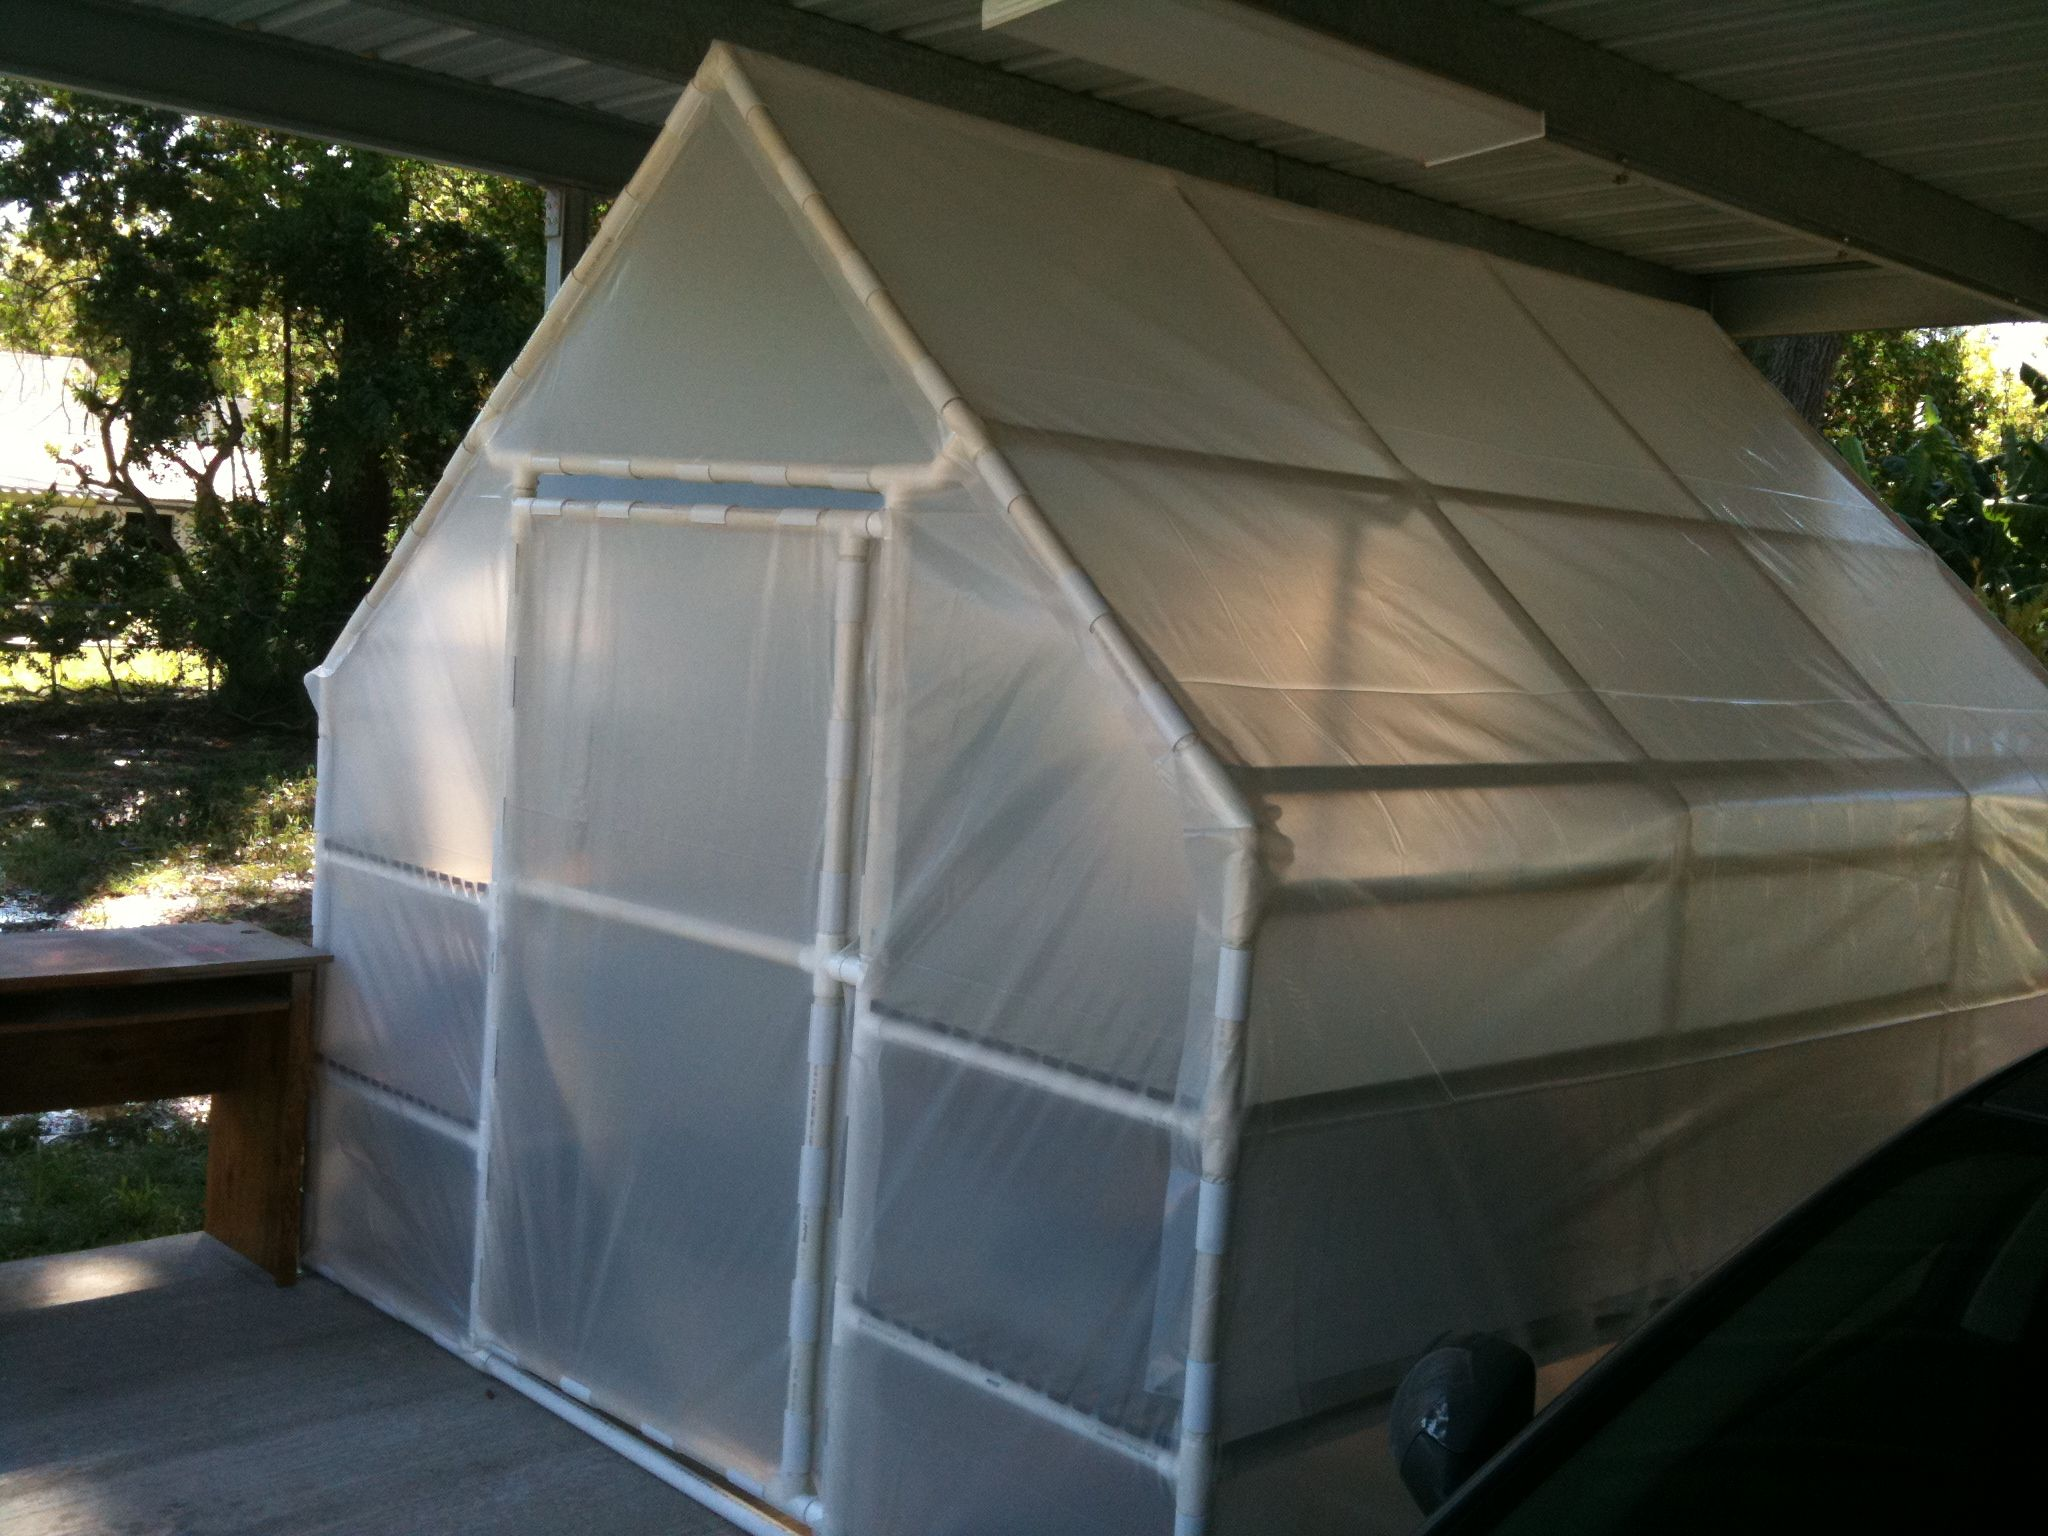 Build A Pvc Greenhouse Pvc Greenhouse Greenhouse Plans Greenhouse